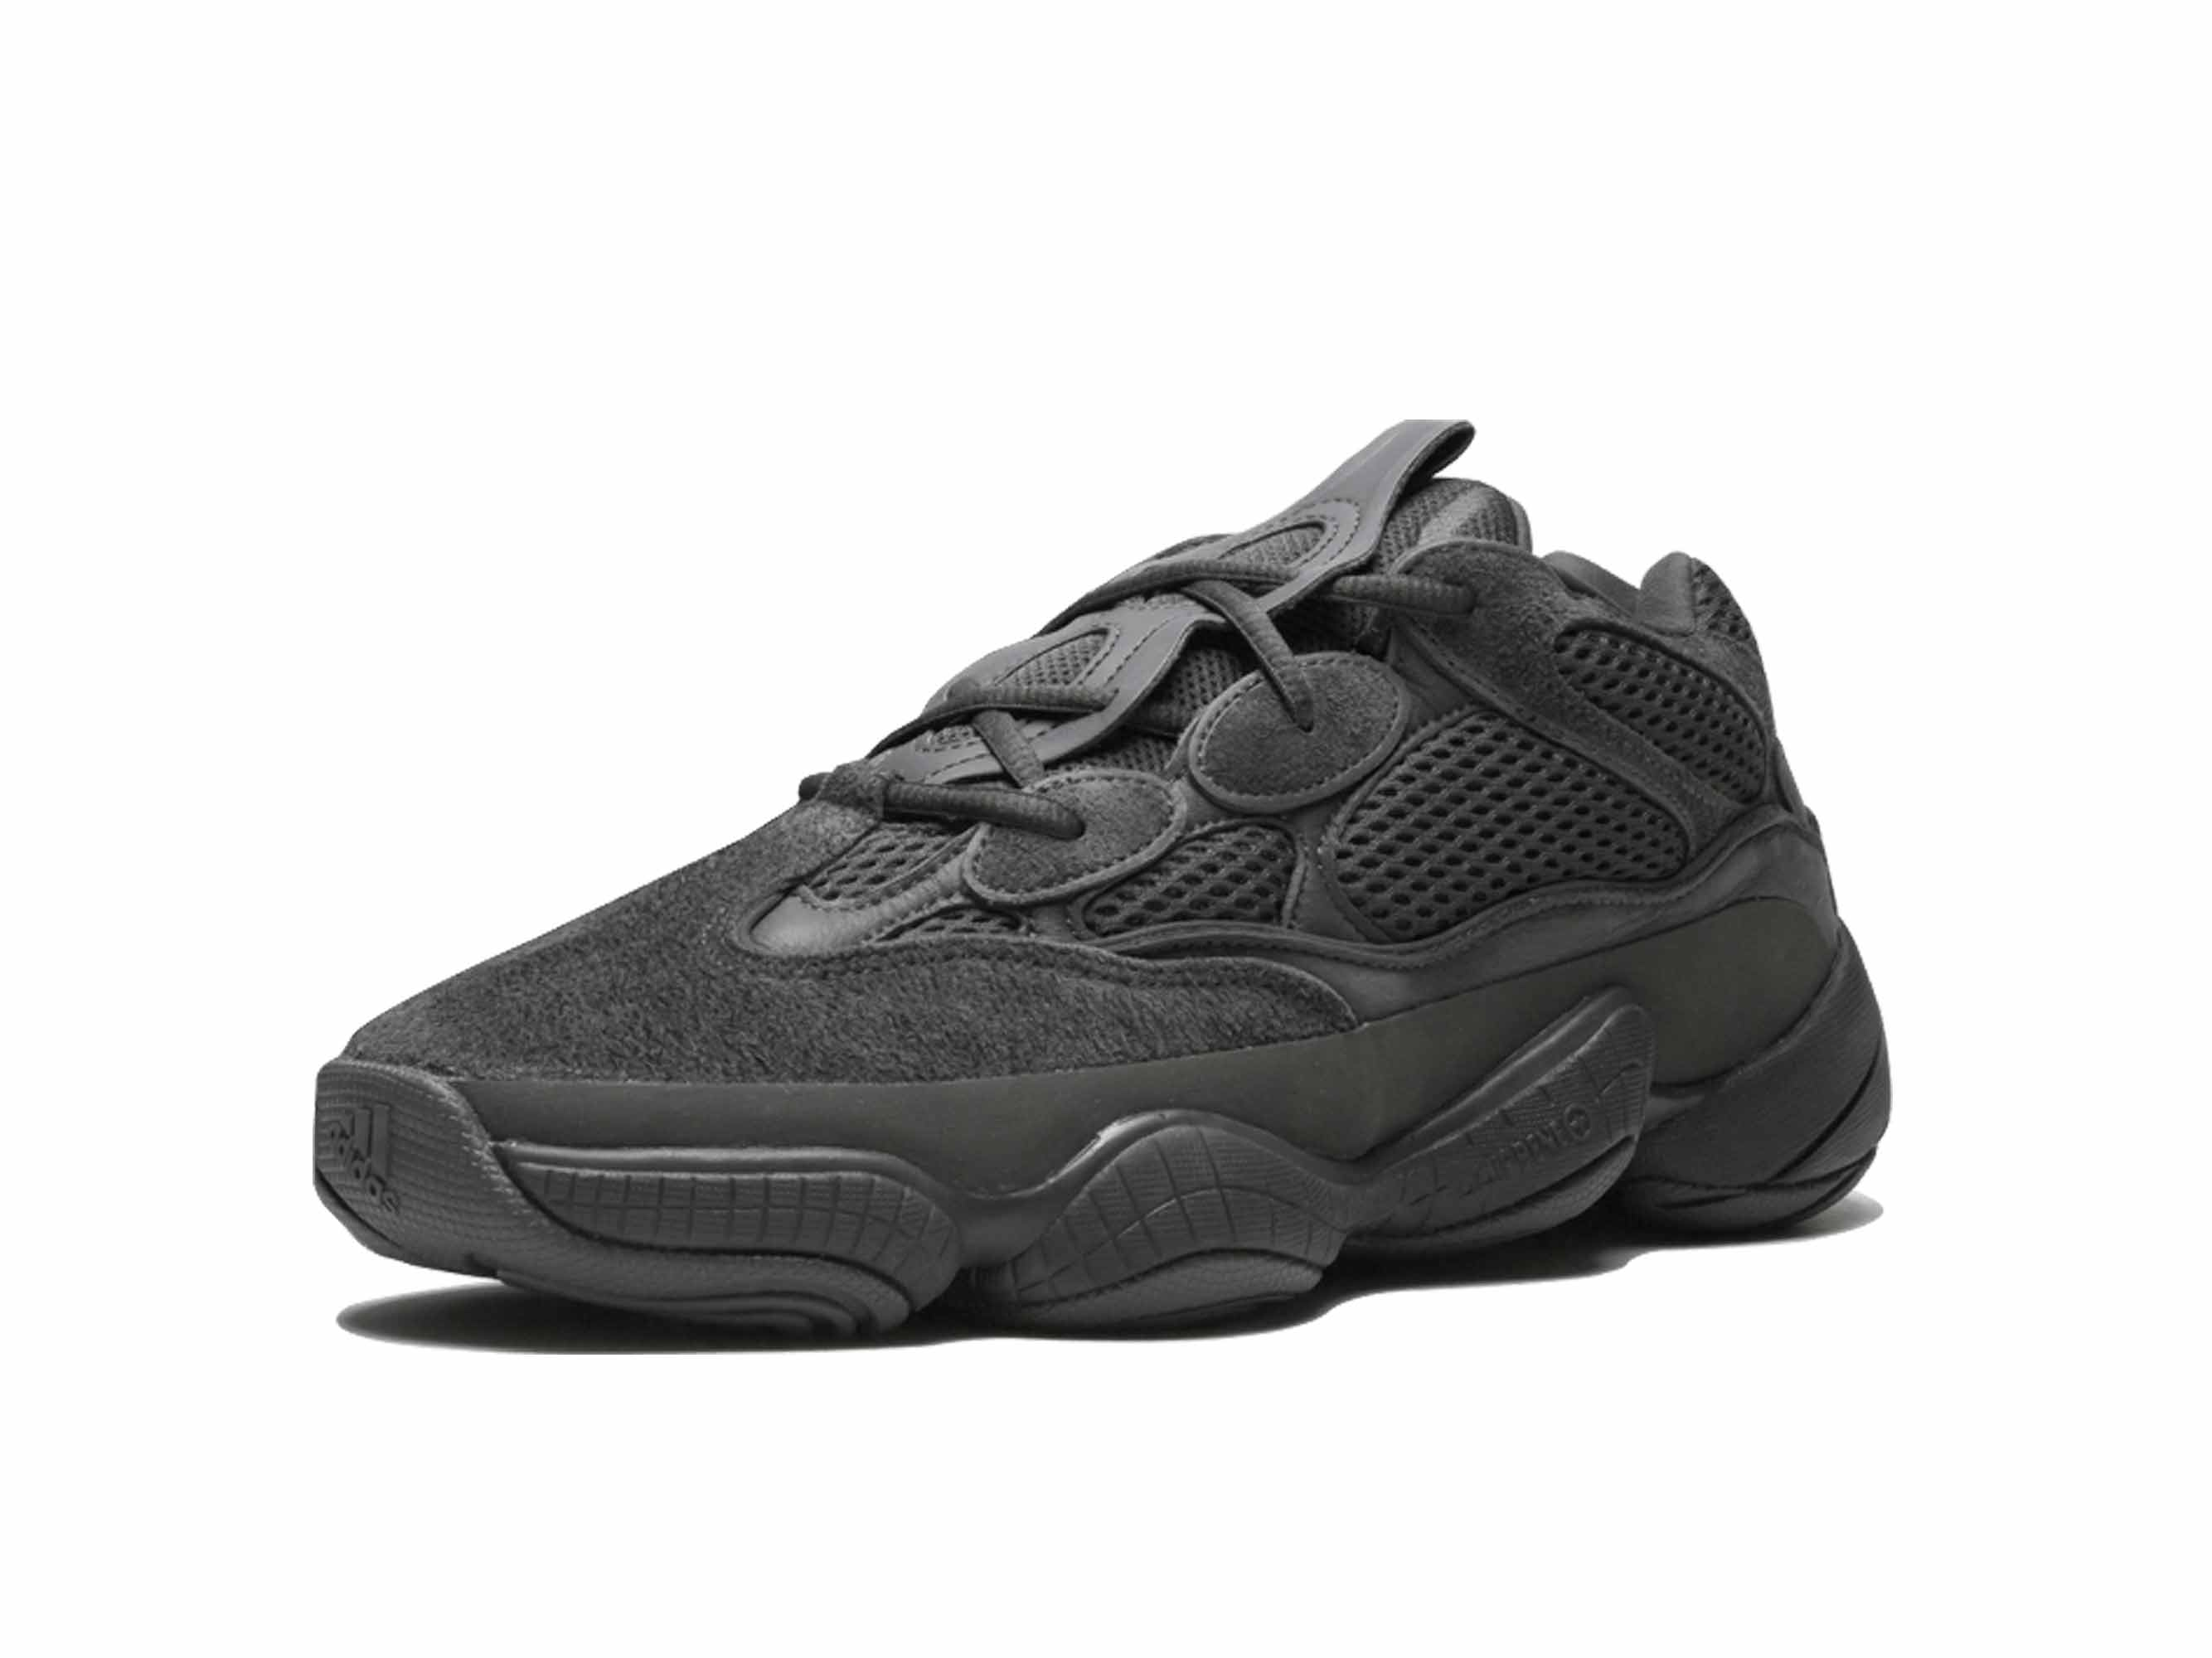 official photos 17109 13a08 adidas yeezy boost 500 utility black